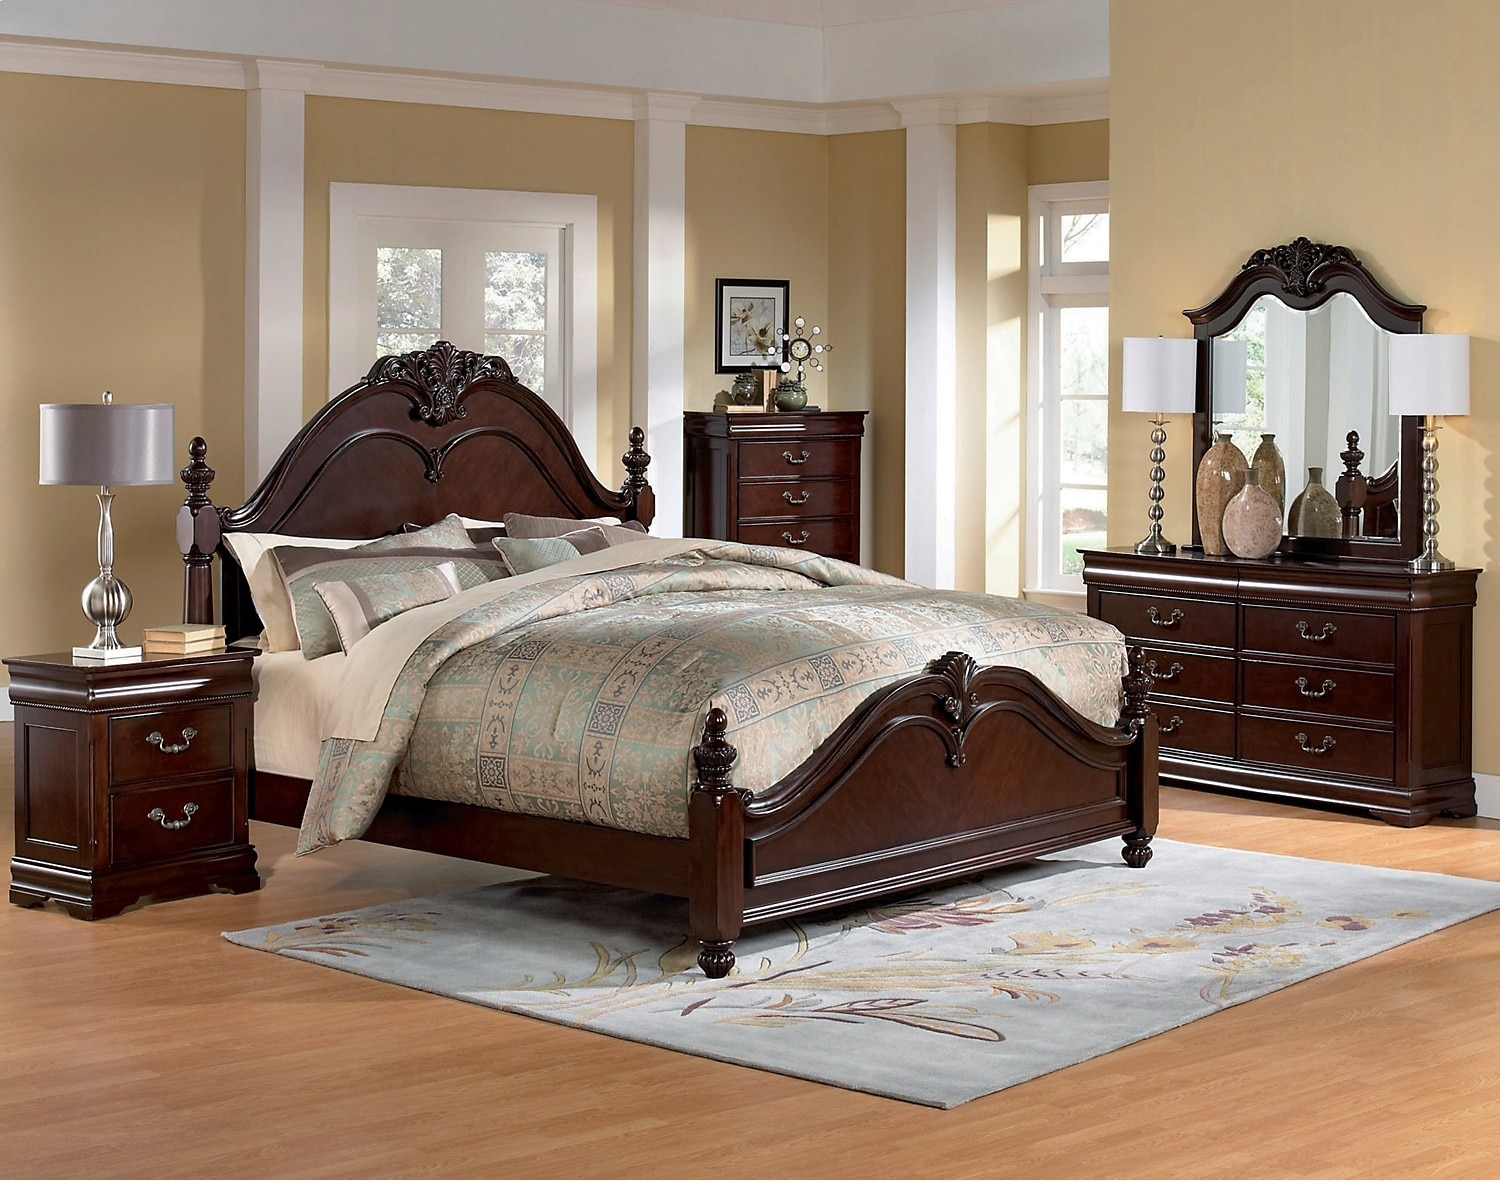 Westchester 8 Piece King Bedroom Set The Brick